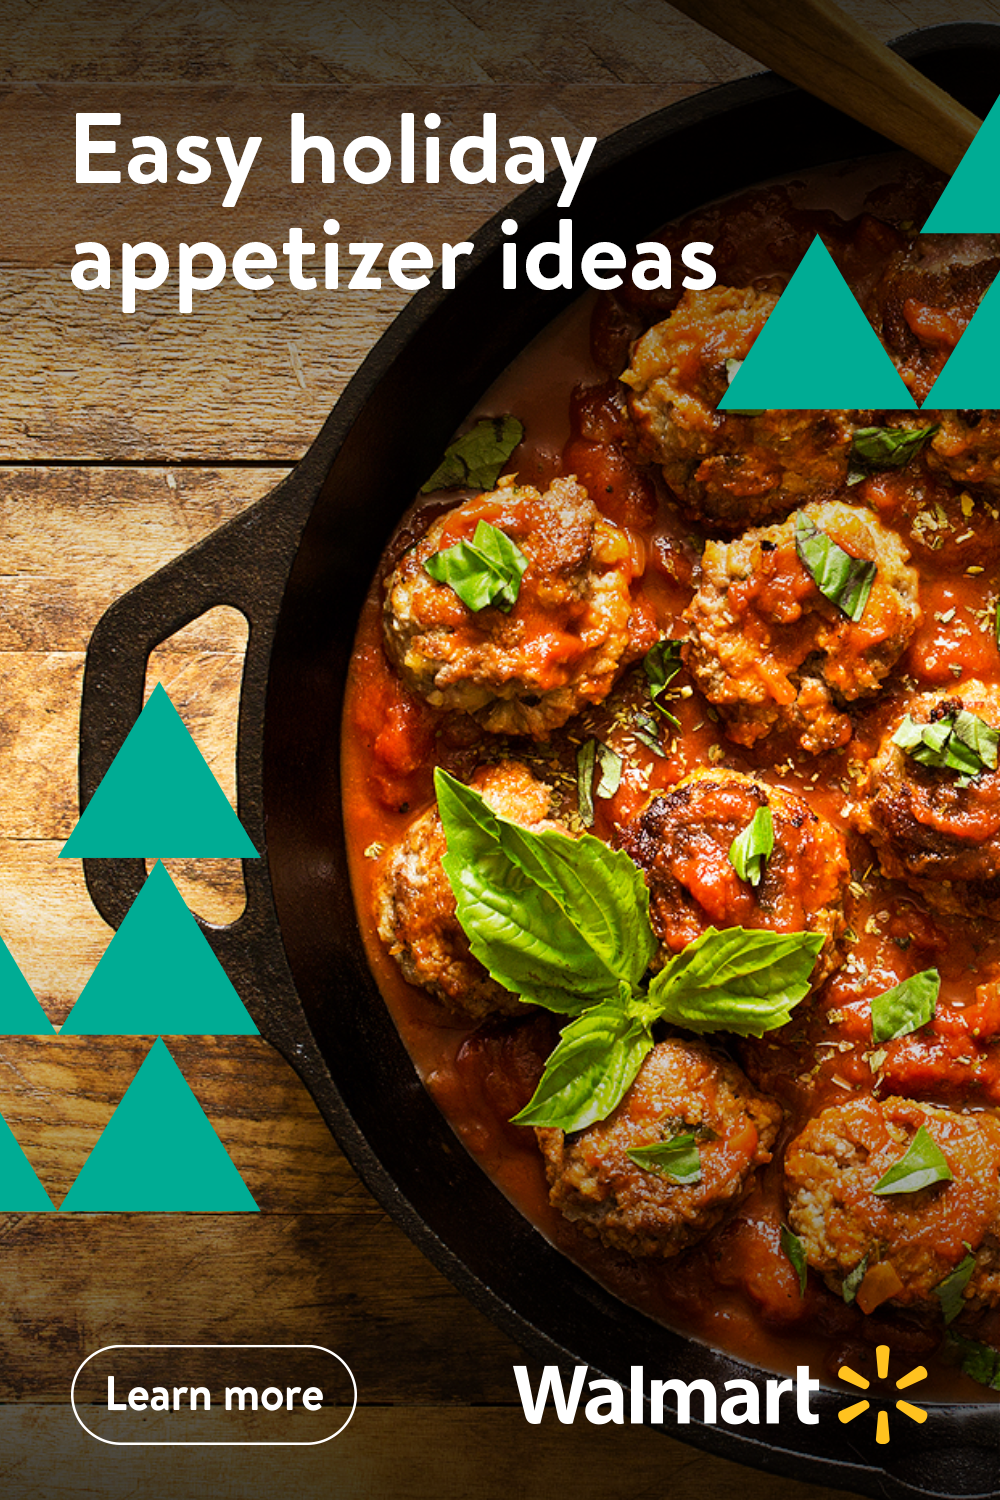 This holiday treat yourself to something delicious from Walmart. Whether you are making a classic app or a new creation, these appetizer ideas will always get your holiday meals started out right.